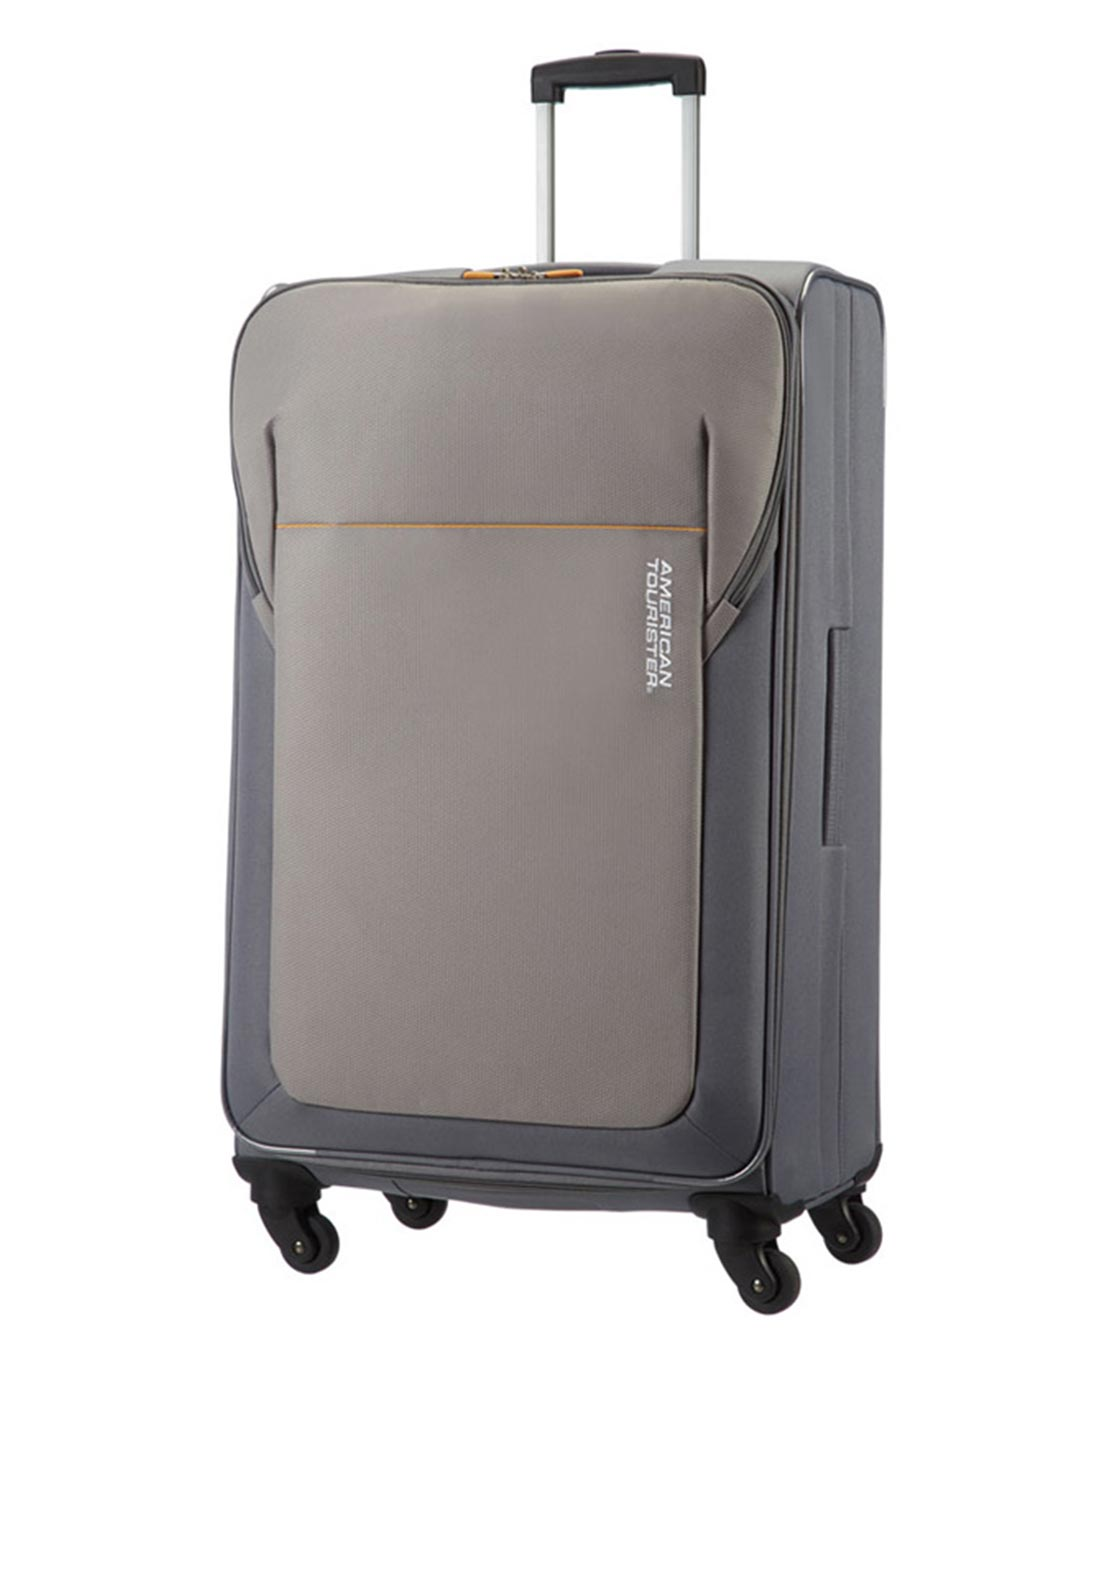 American Tourister San Francisco Spinner Large Suitcase, Grey